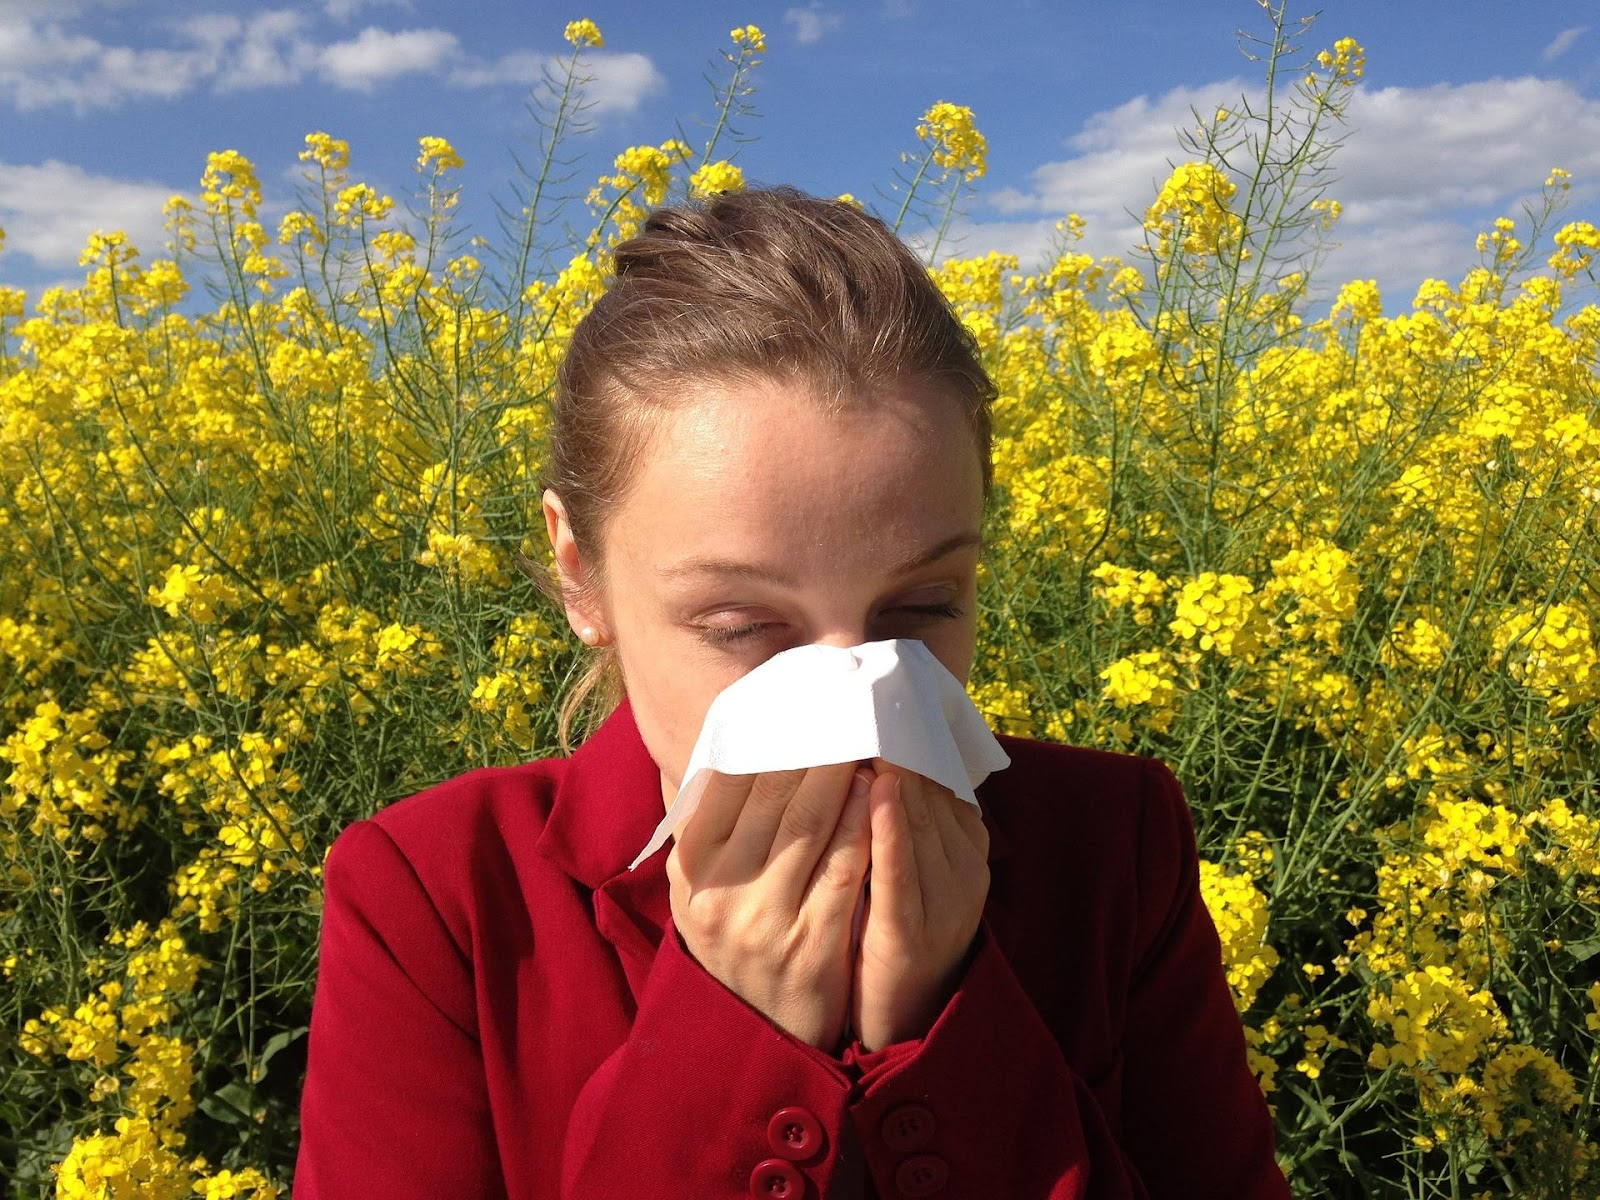 What Causes Allergies to Develop?